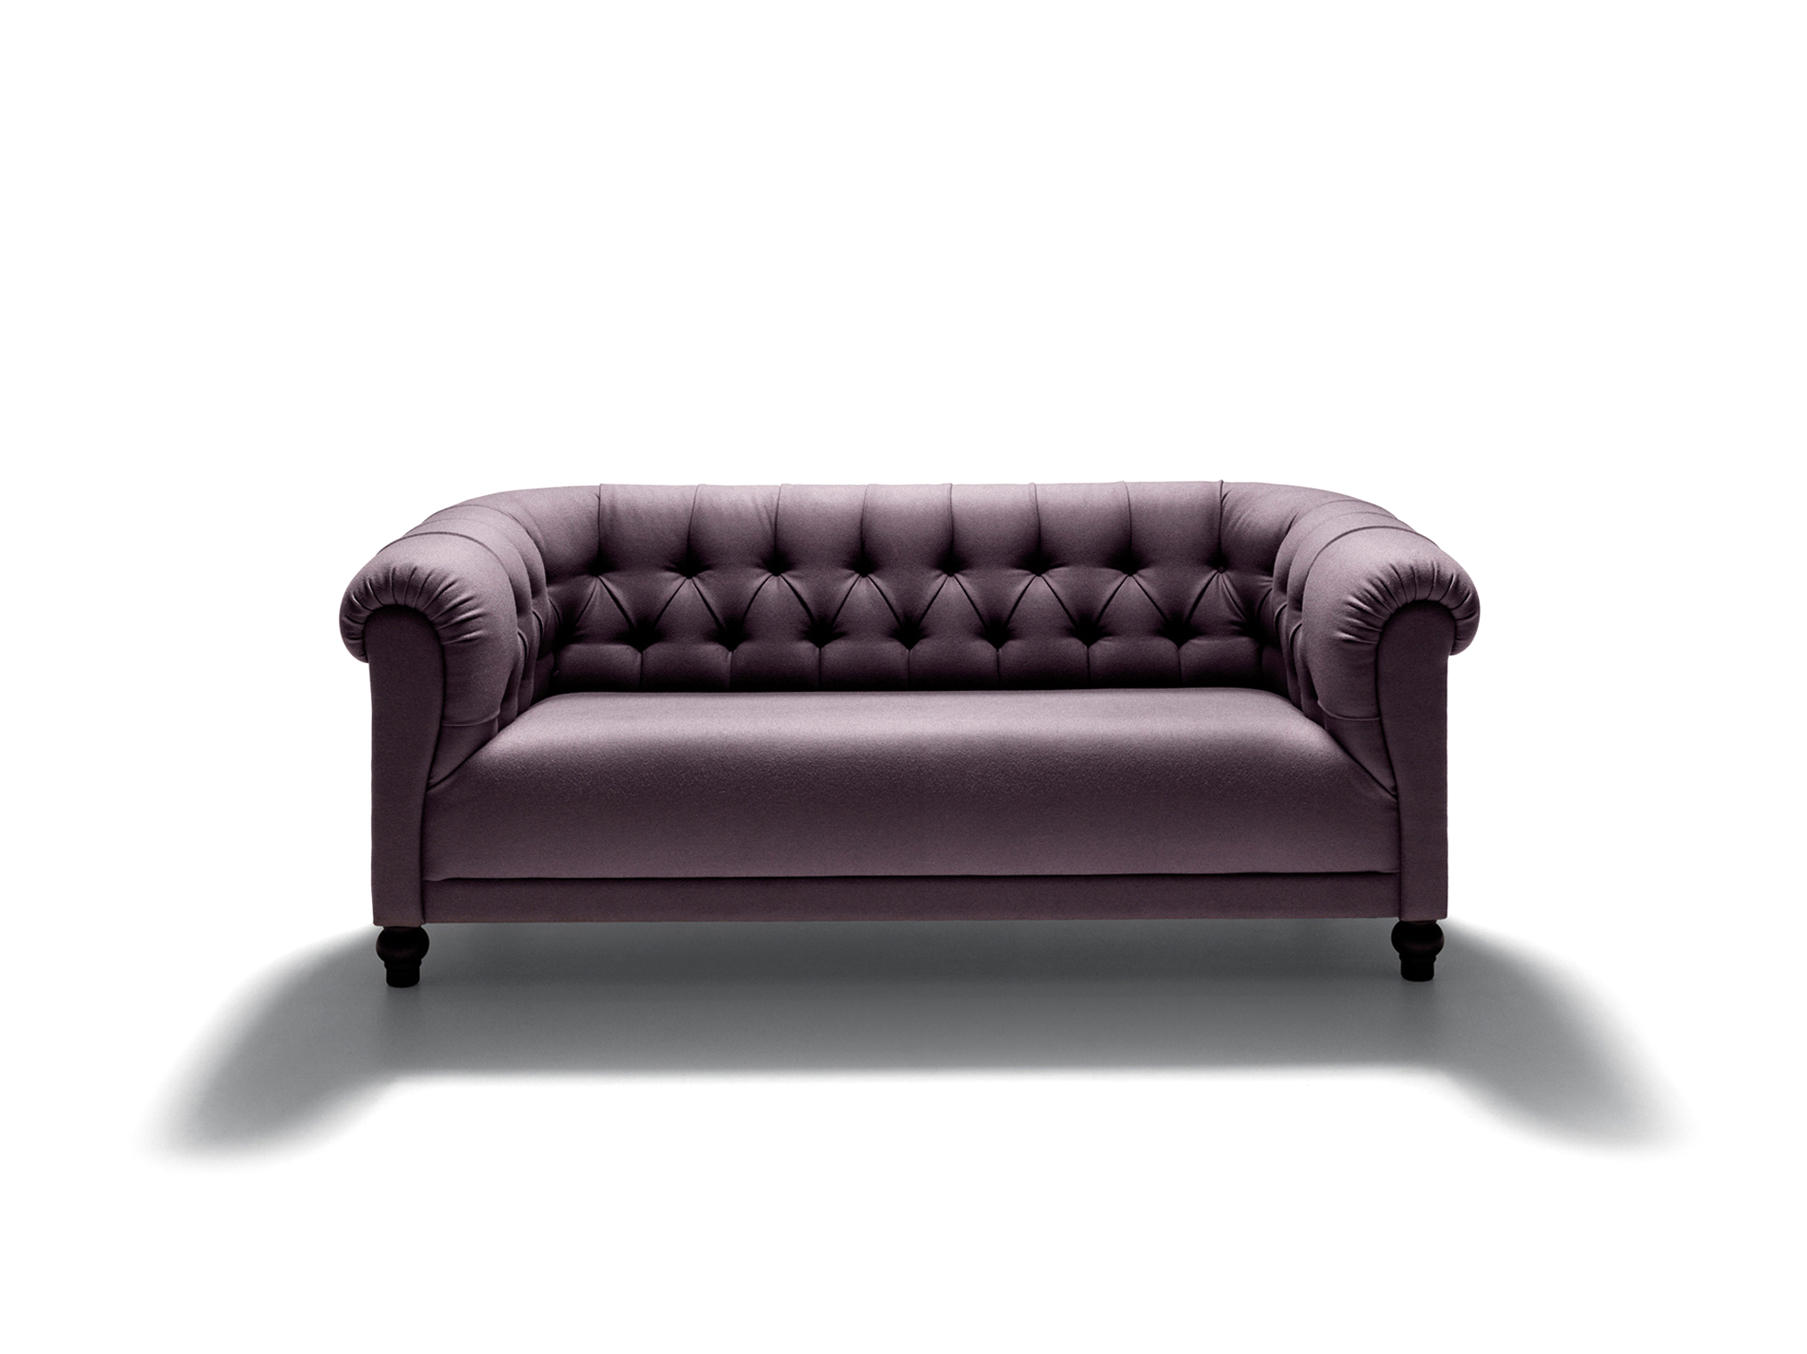 CHESTERFIELD 16 - Sofas von De Padova | Architonic